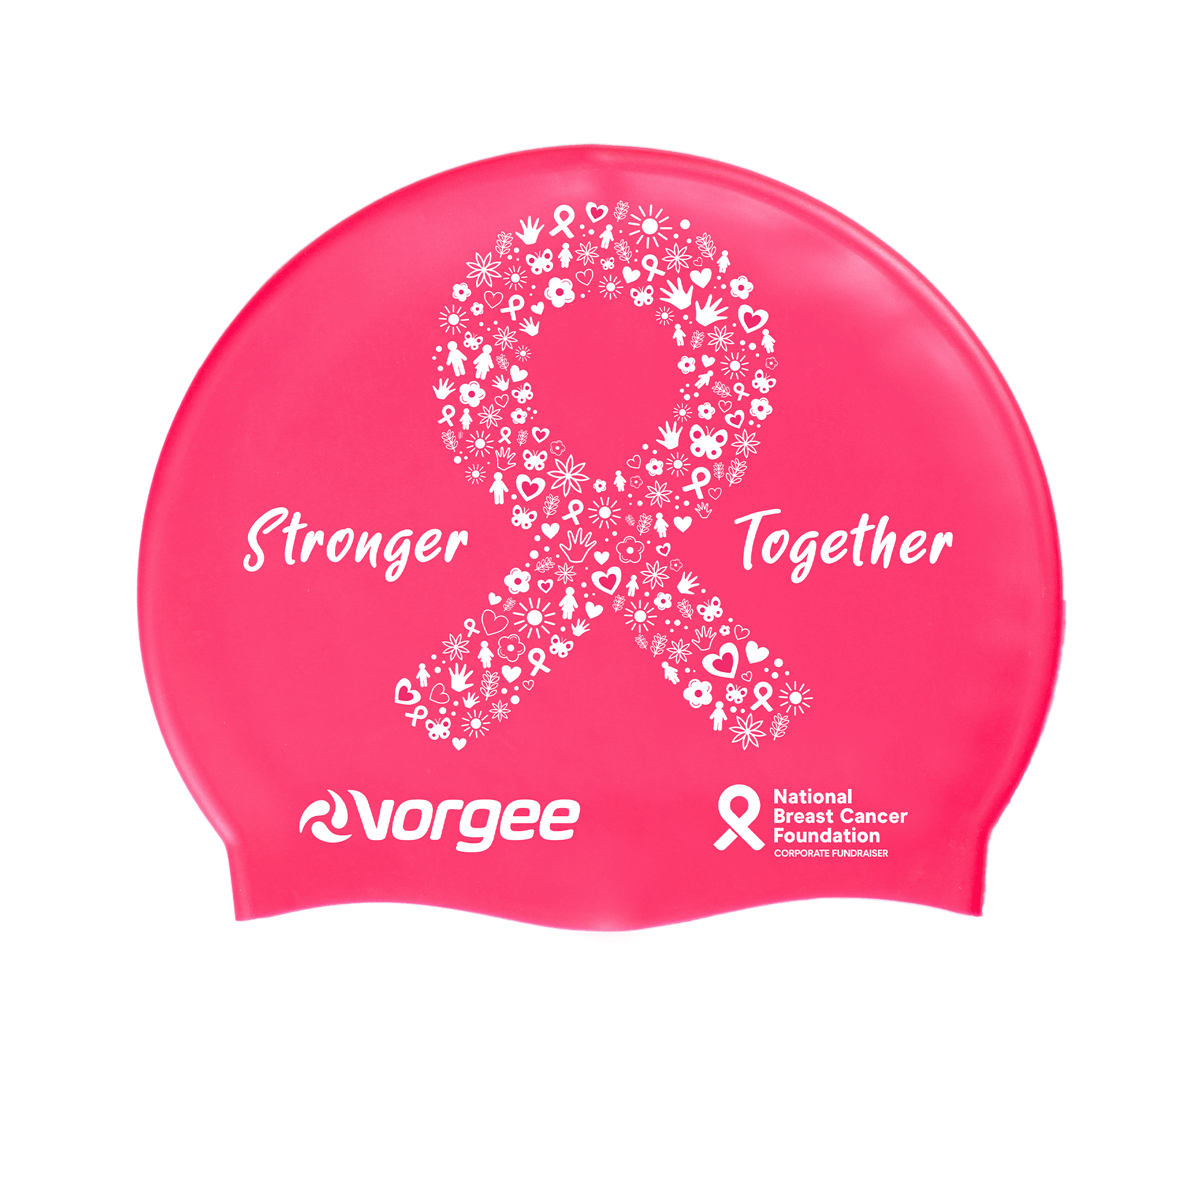 Vorgee Silicone Swim Cap - National Breast Cancer Foundation NBCF